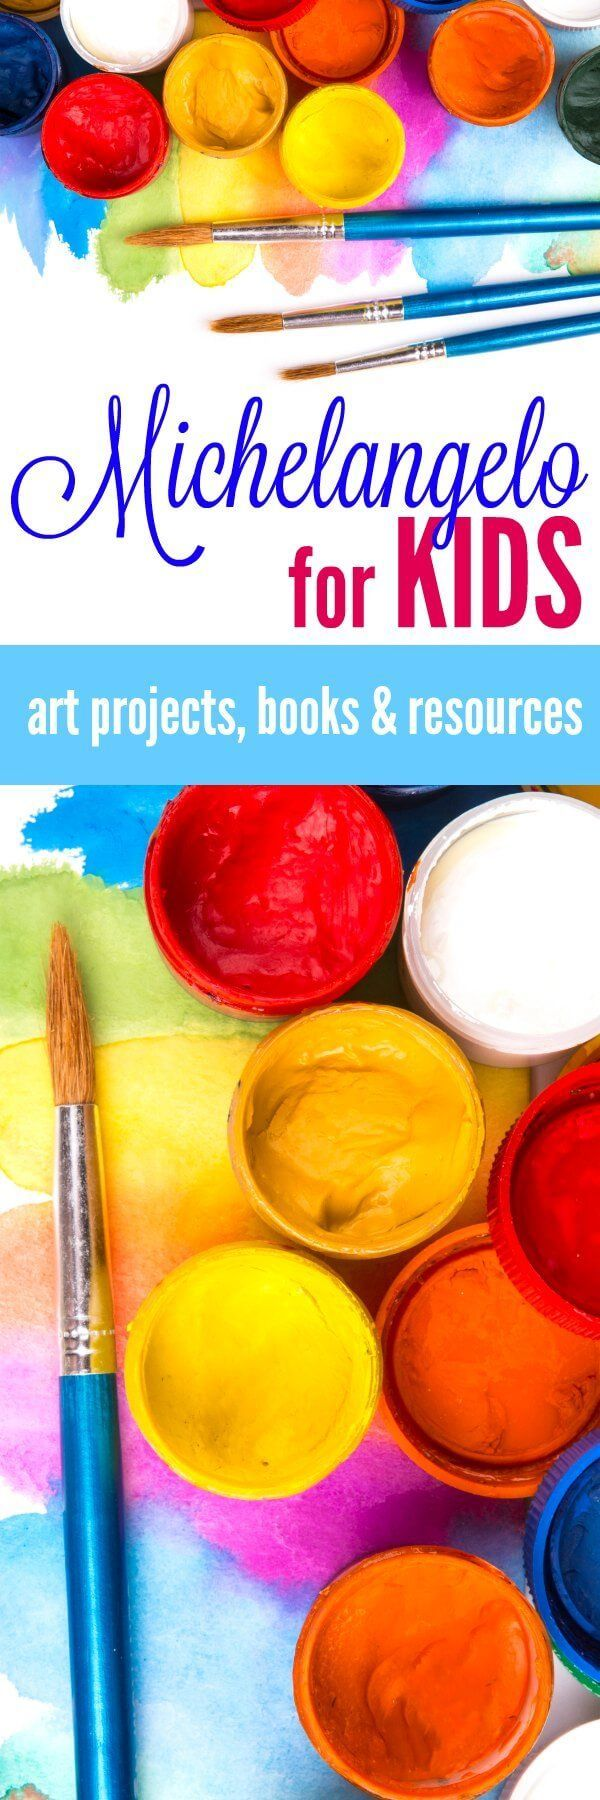 33 Best images about Learning Art on Pinterest | Kids art ...